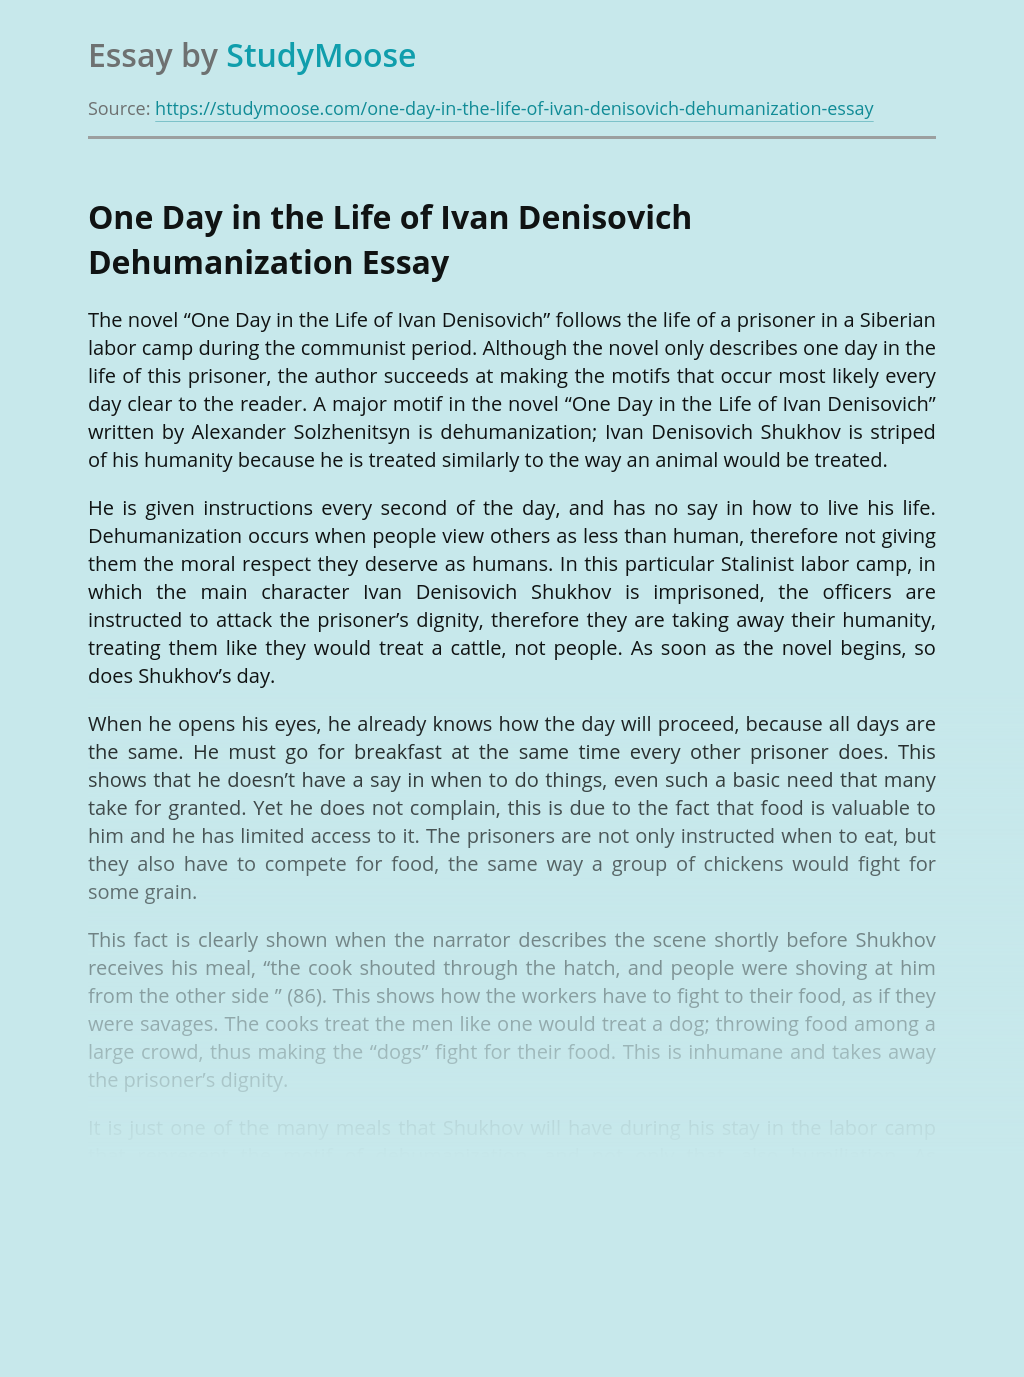 One Day in the Life of Ivan Denisovich Dehumanization